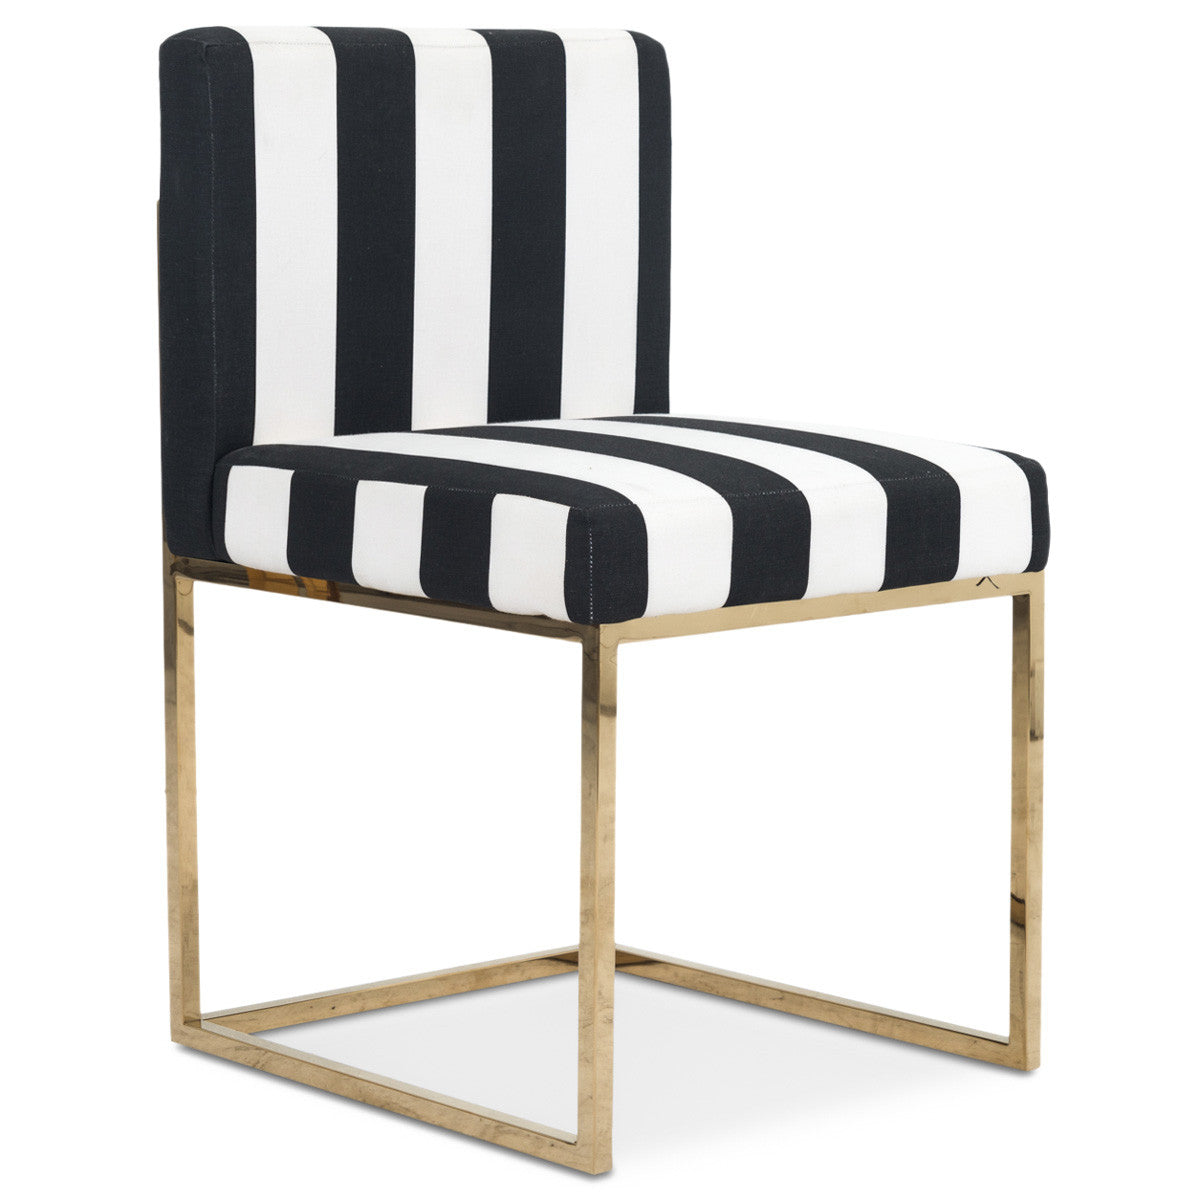 Great 007 Dining Chair In Black And White Stripes